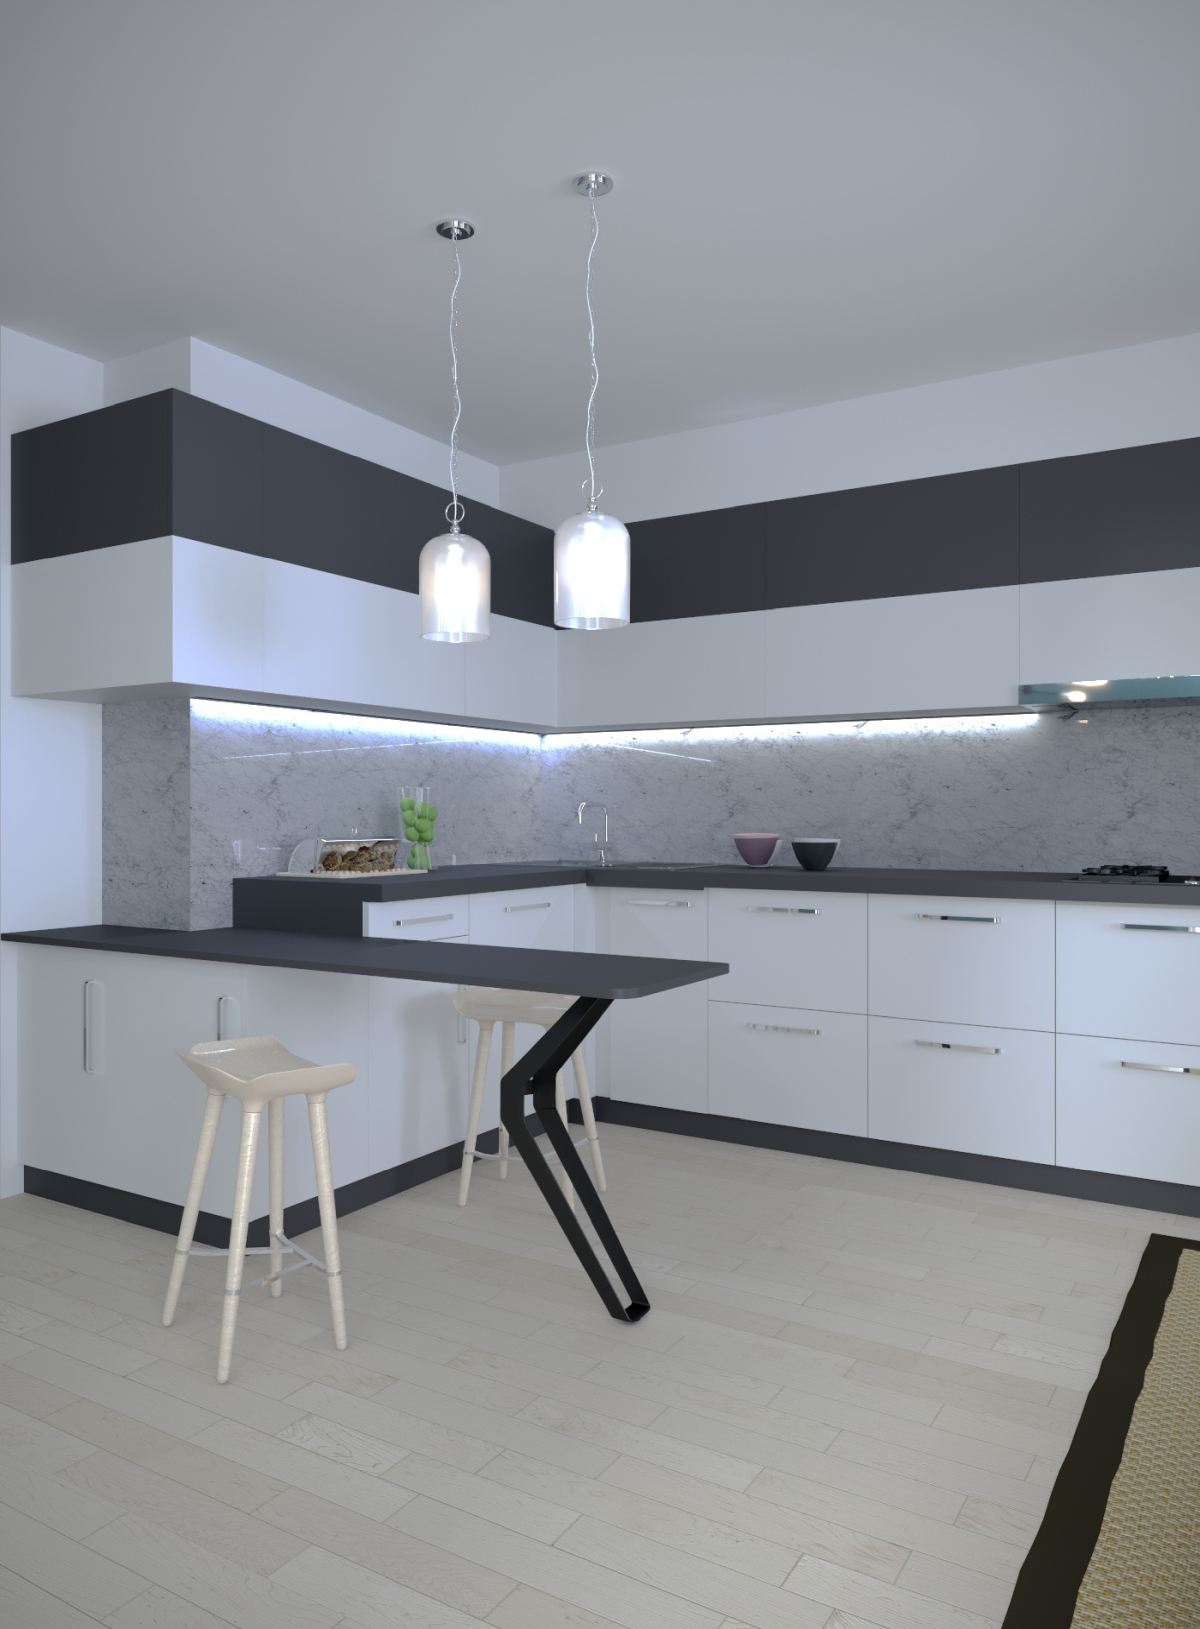 ion turcanu johny design interior modern bucatarie kitchen (1)